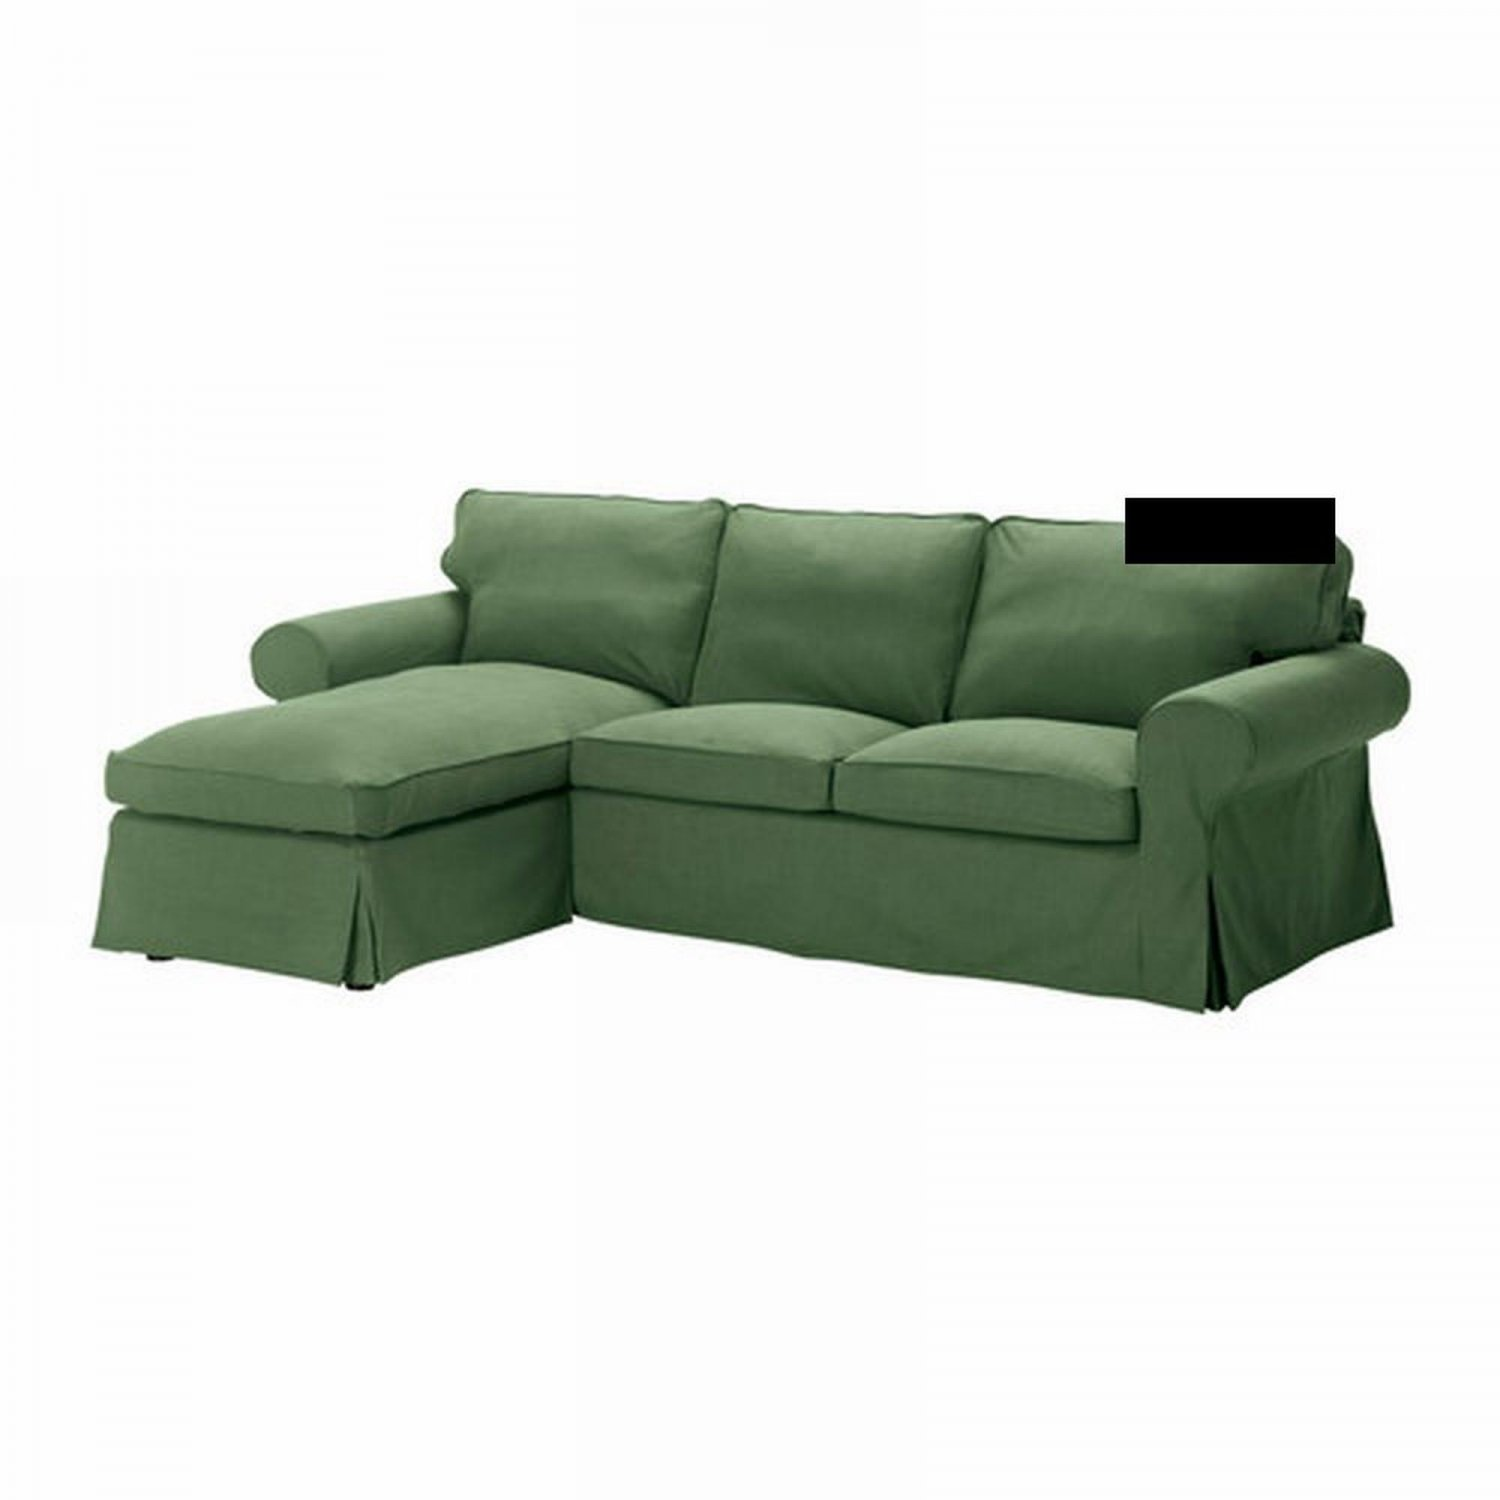 Ikea Ektorp 2 Seat Loveseat W Chaise Cover 3 Seat